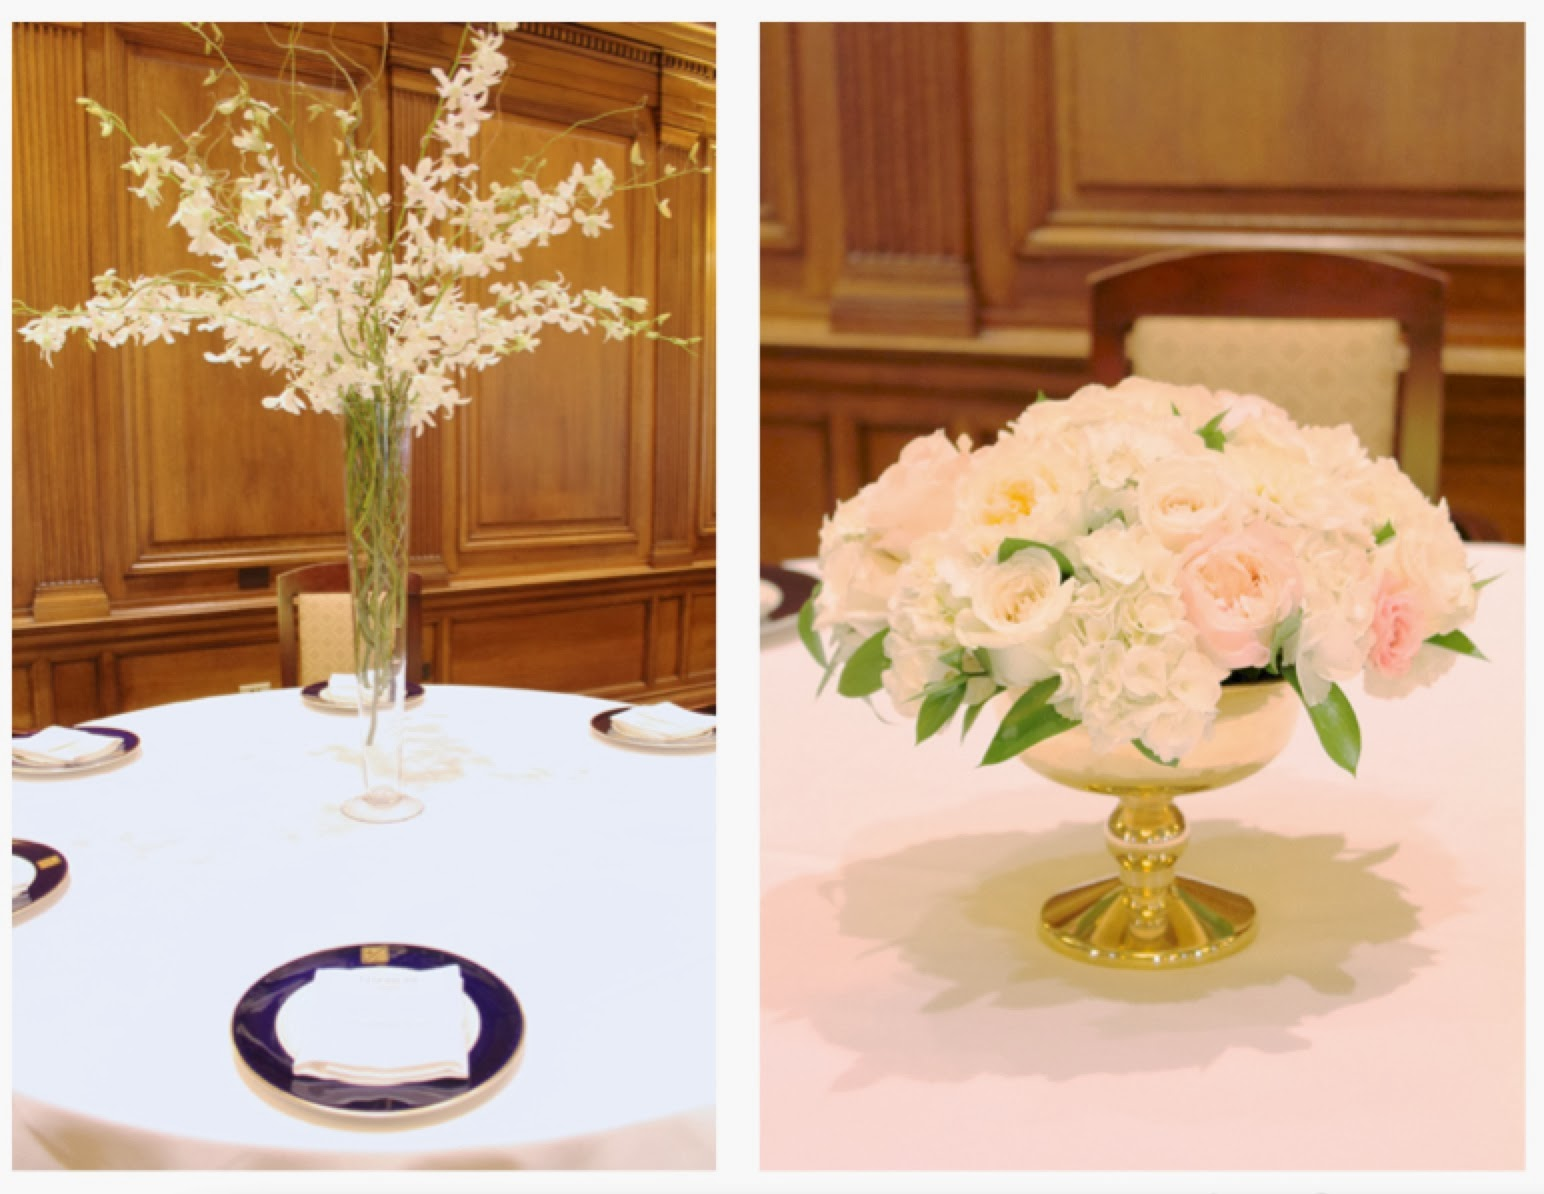 Elevated branch and orchid classic elegant white centerpiece and gold compote centerpiece by Sweet Pea Floral Design for Detroit Athletic Club wedding